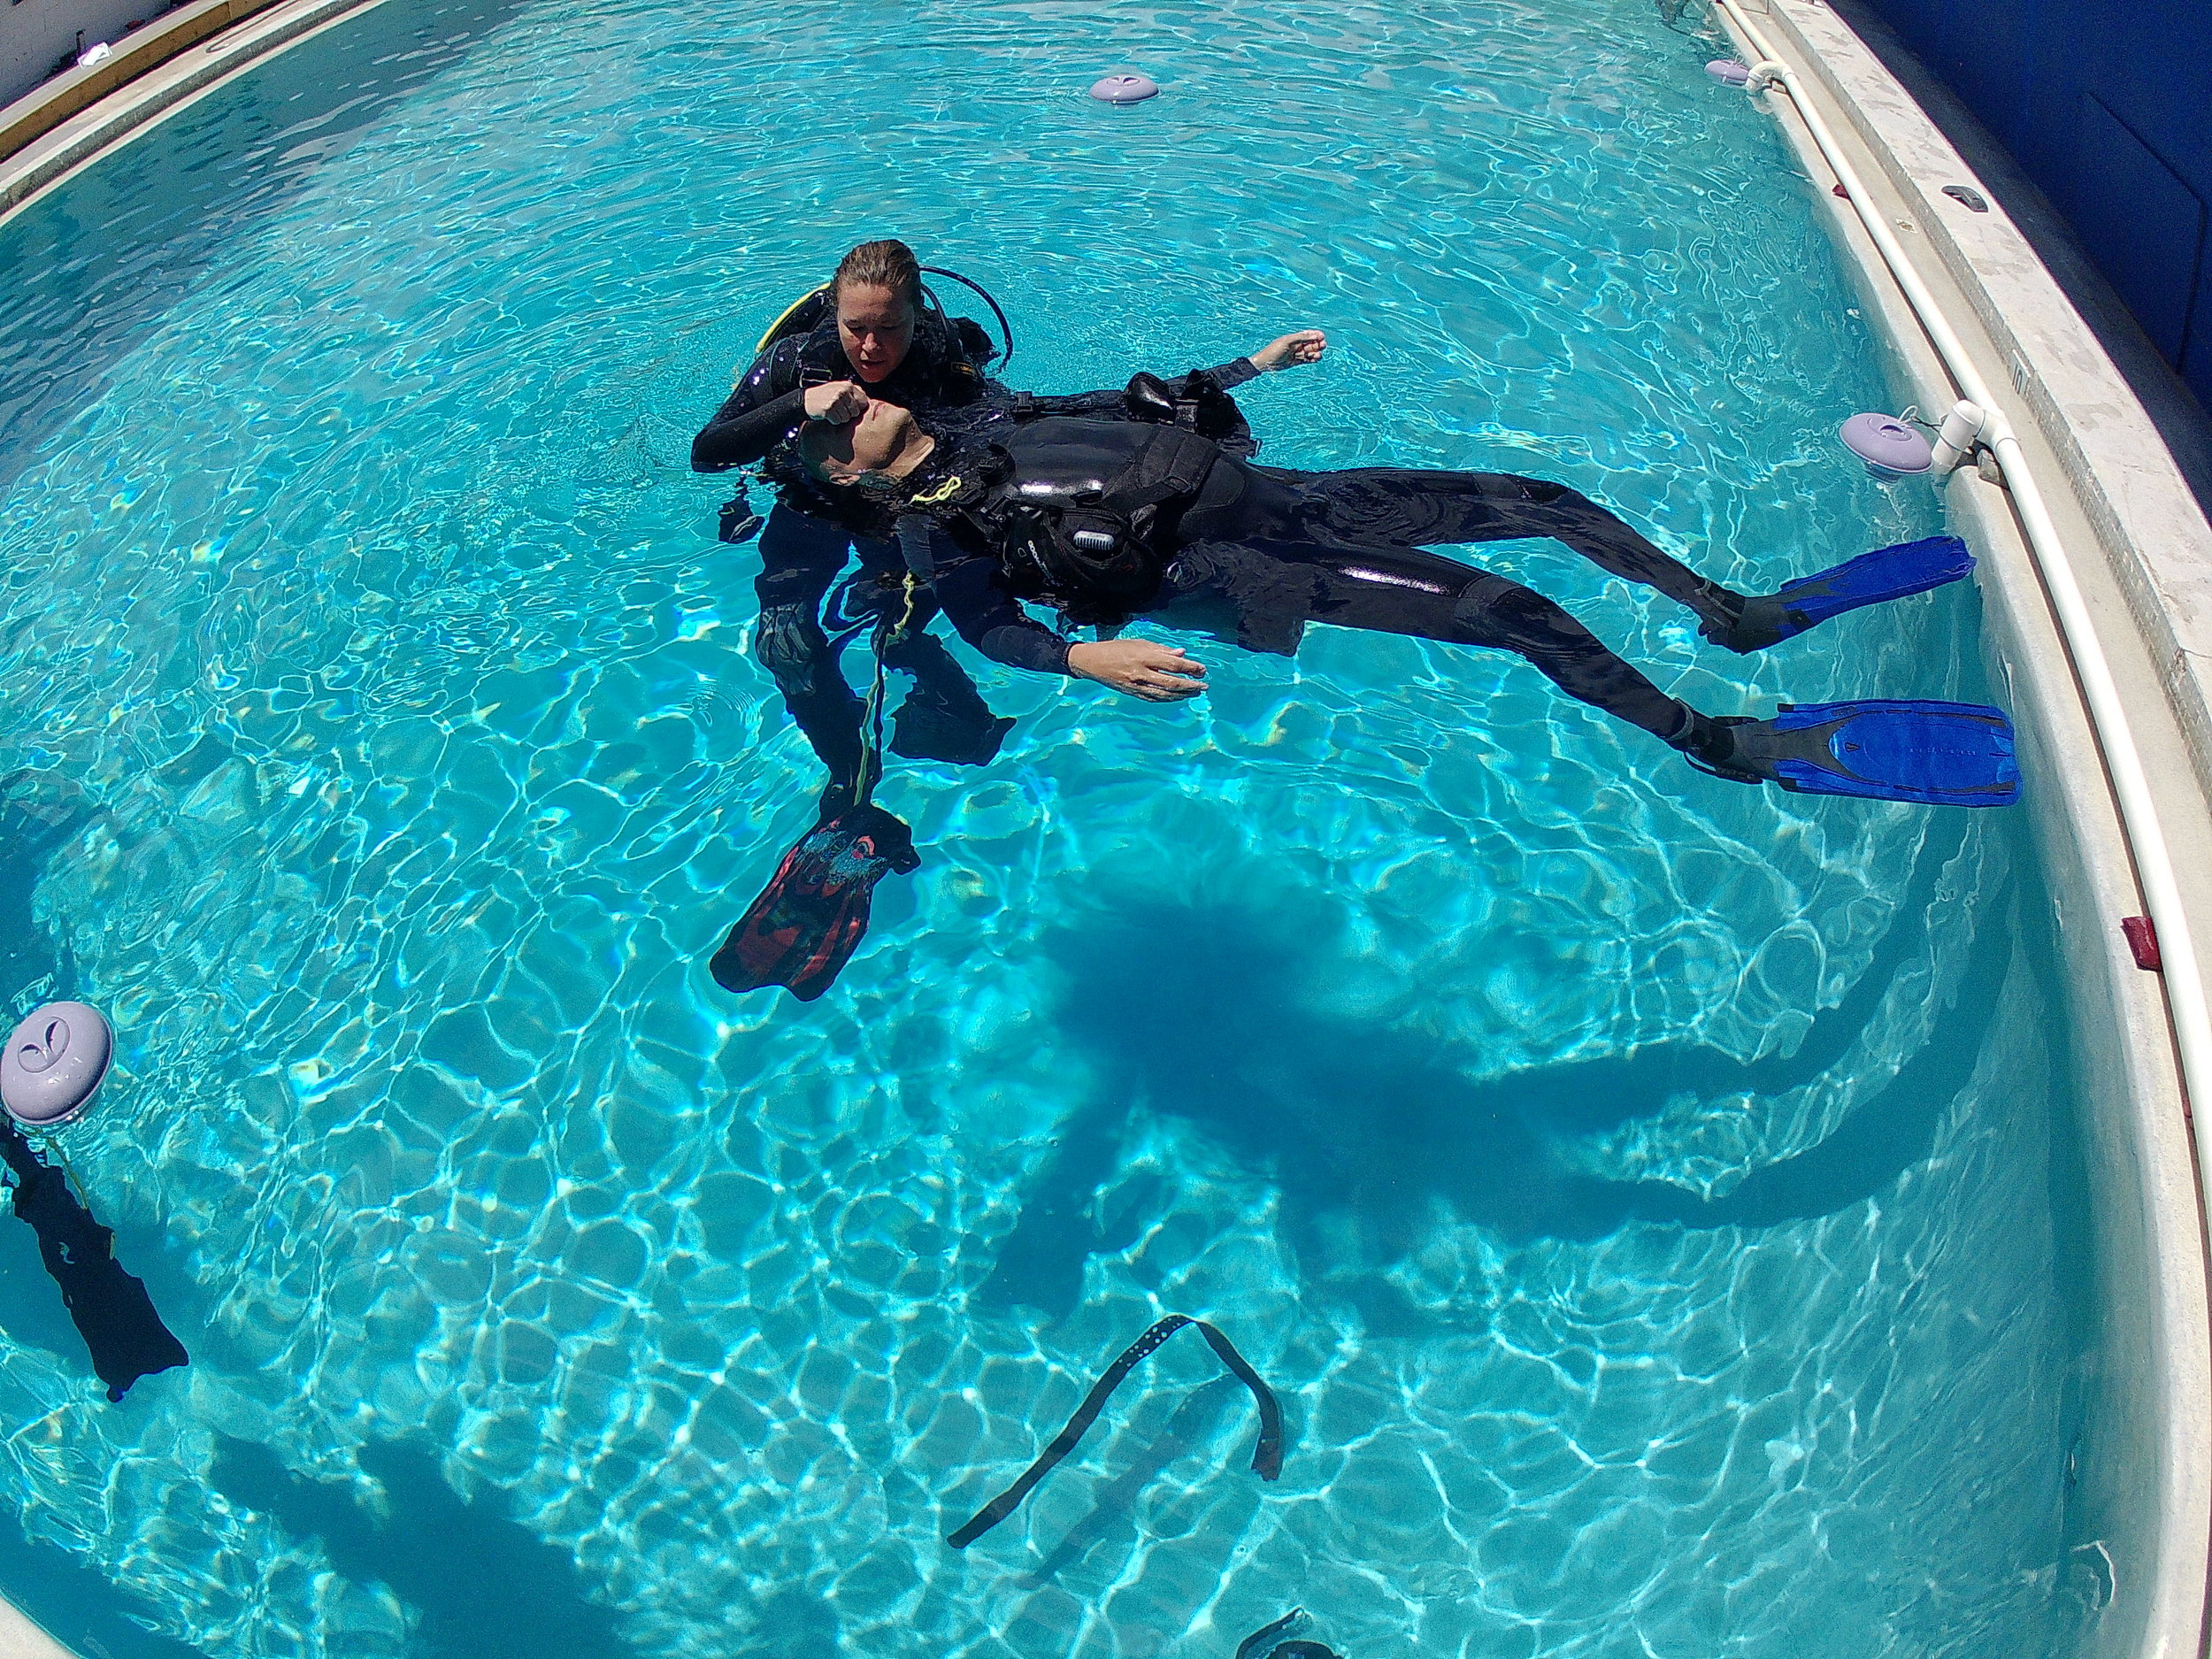 Rescue Diver - In water